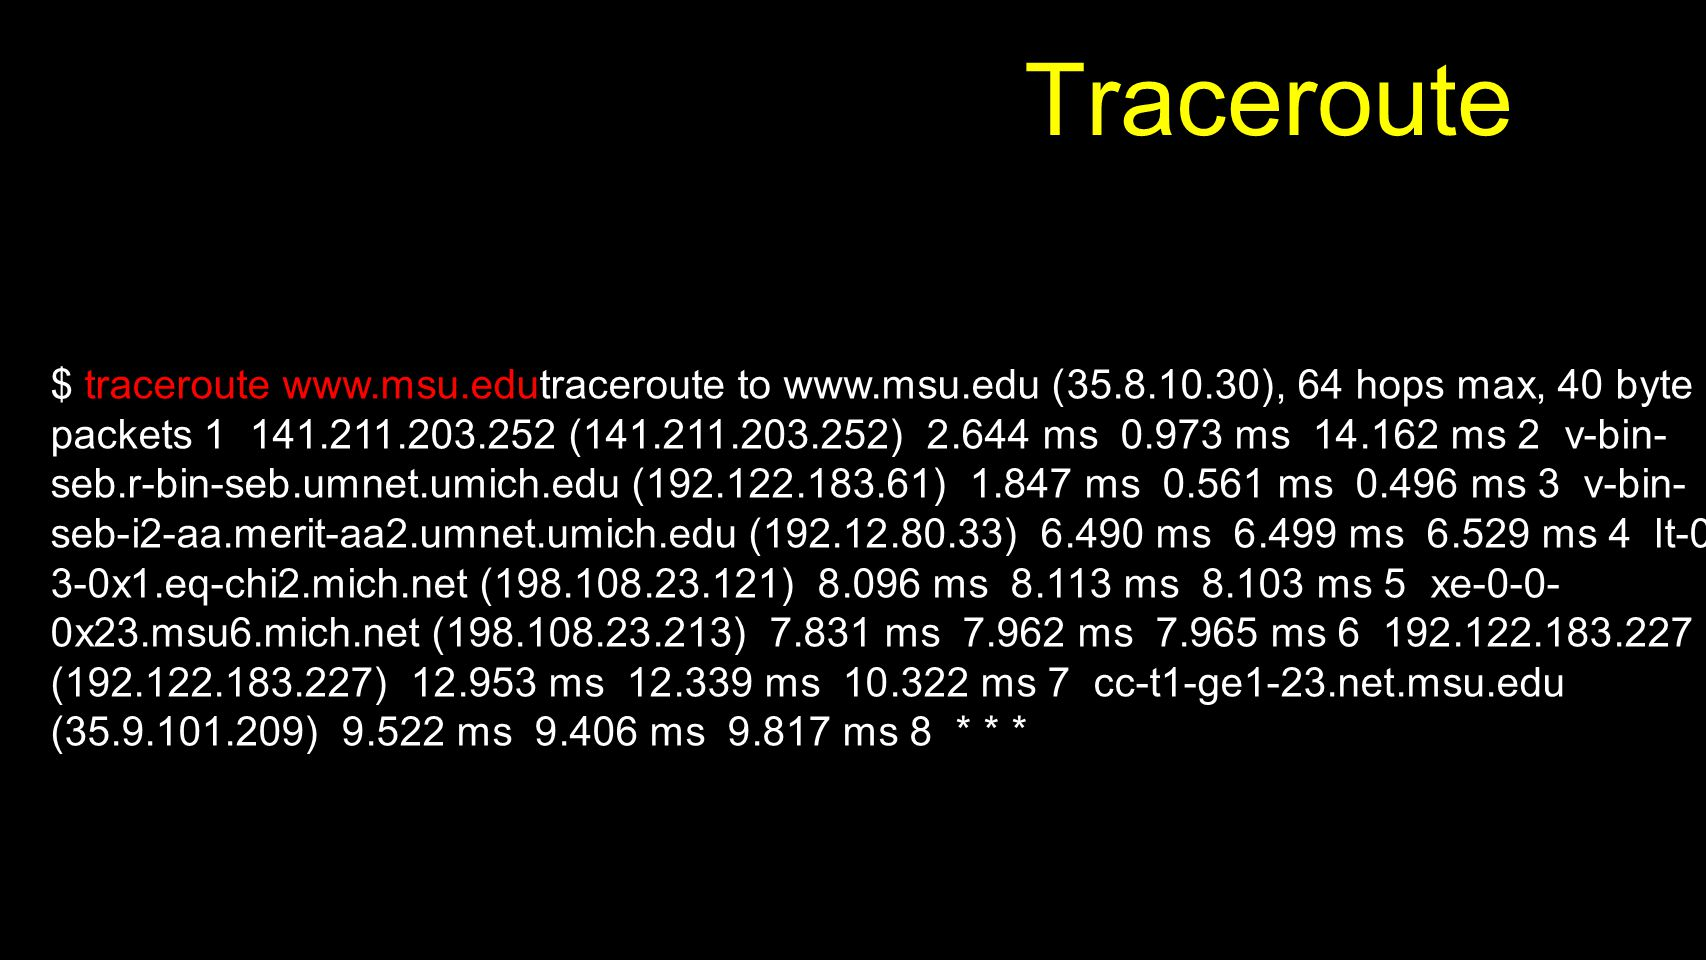 Traceroute $ traceroute www.msu.edutraceroute to www.msu.edu (35.8.10.30), 64 hops max, 40 byte packets 1 141.211.203.252 (141.211.203.252) 2.644 ms 0